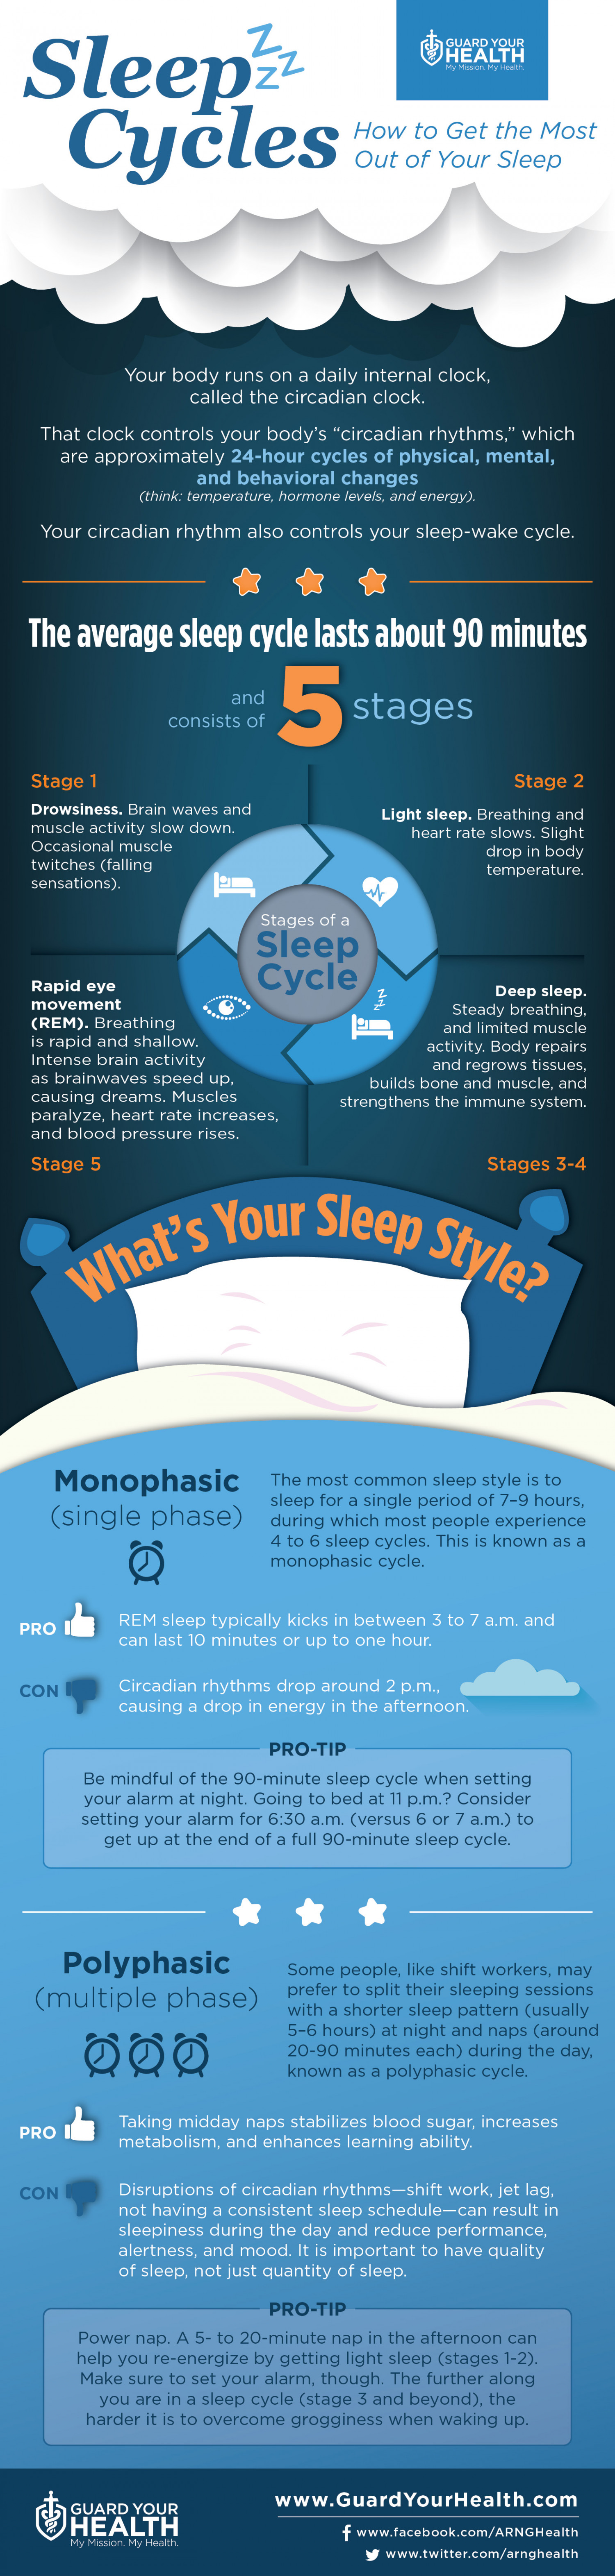 Sleep Cycles: How to Get the Most Out of Your Sleep Infographic